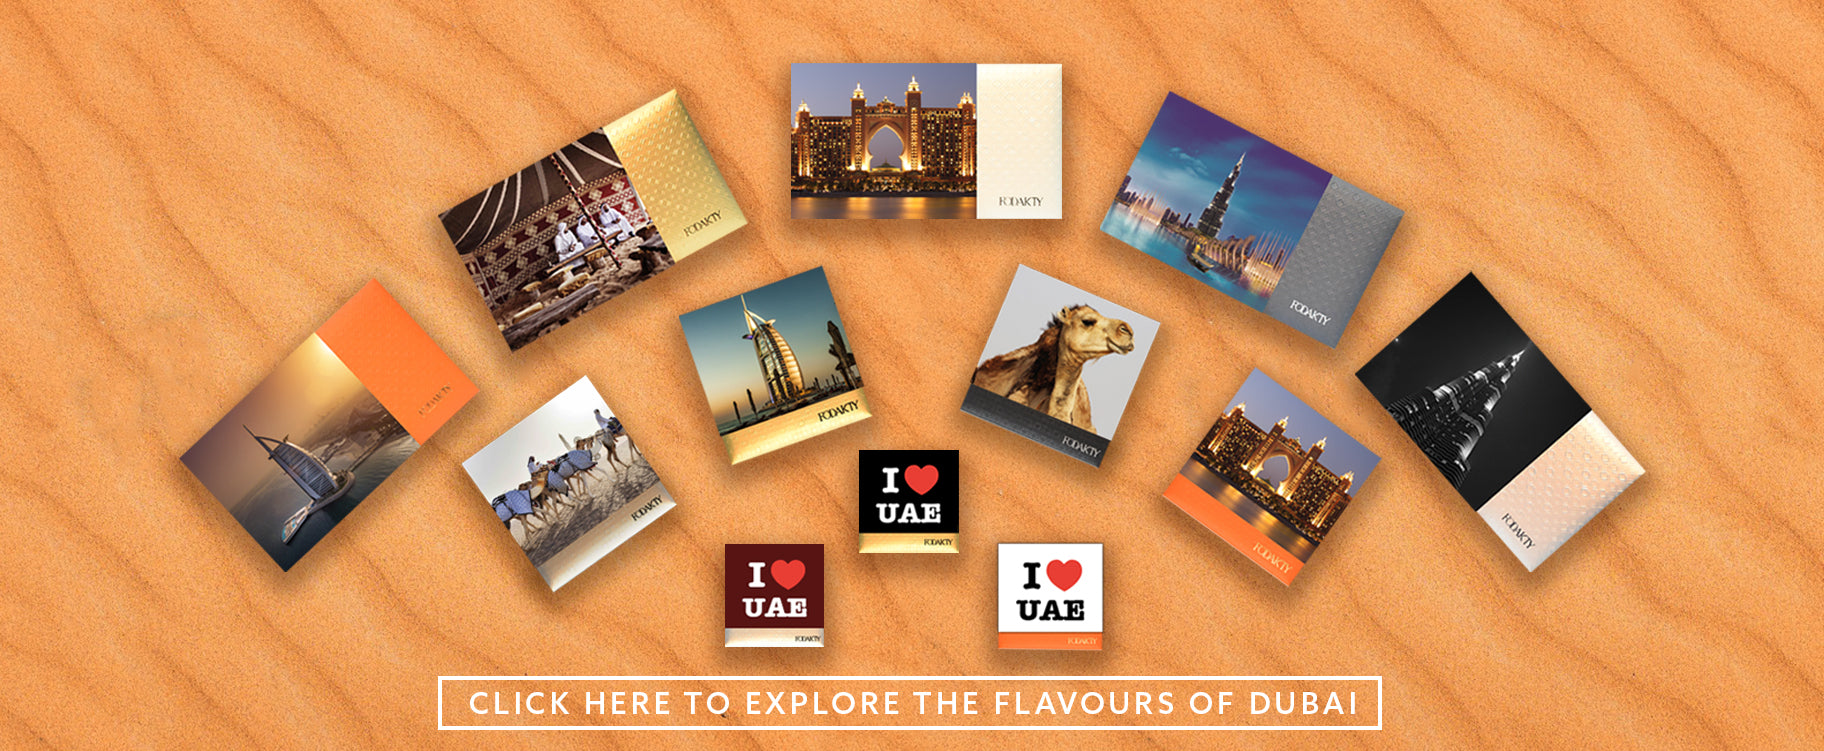 Dates gift box Flavors of Dubai